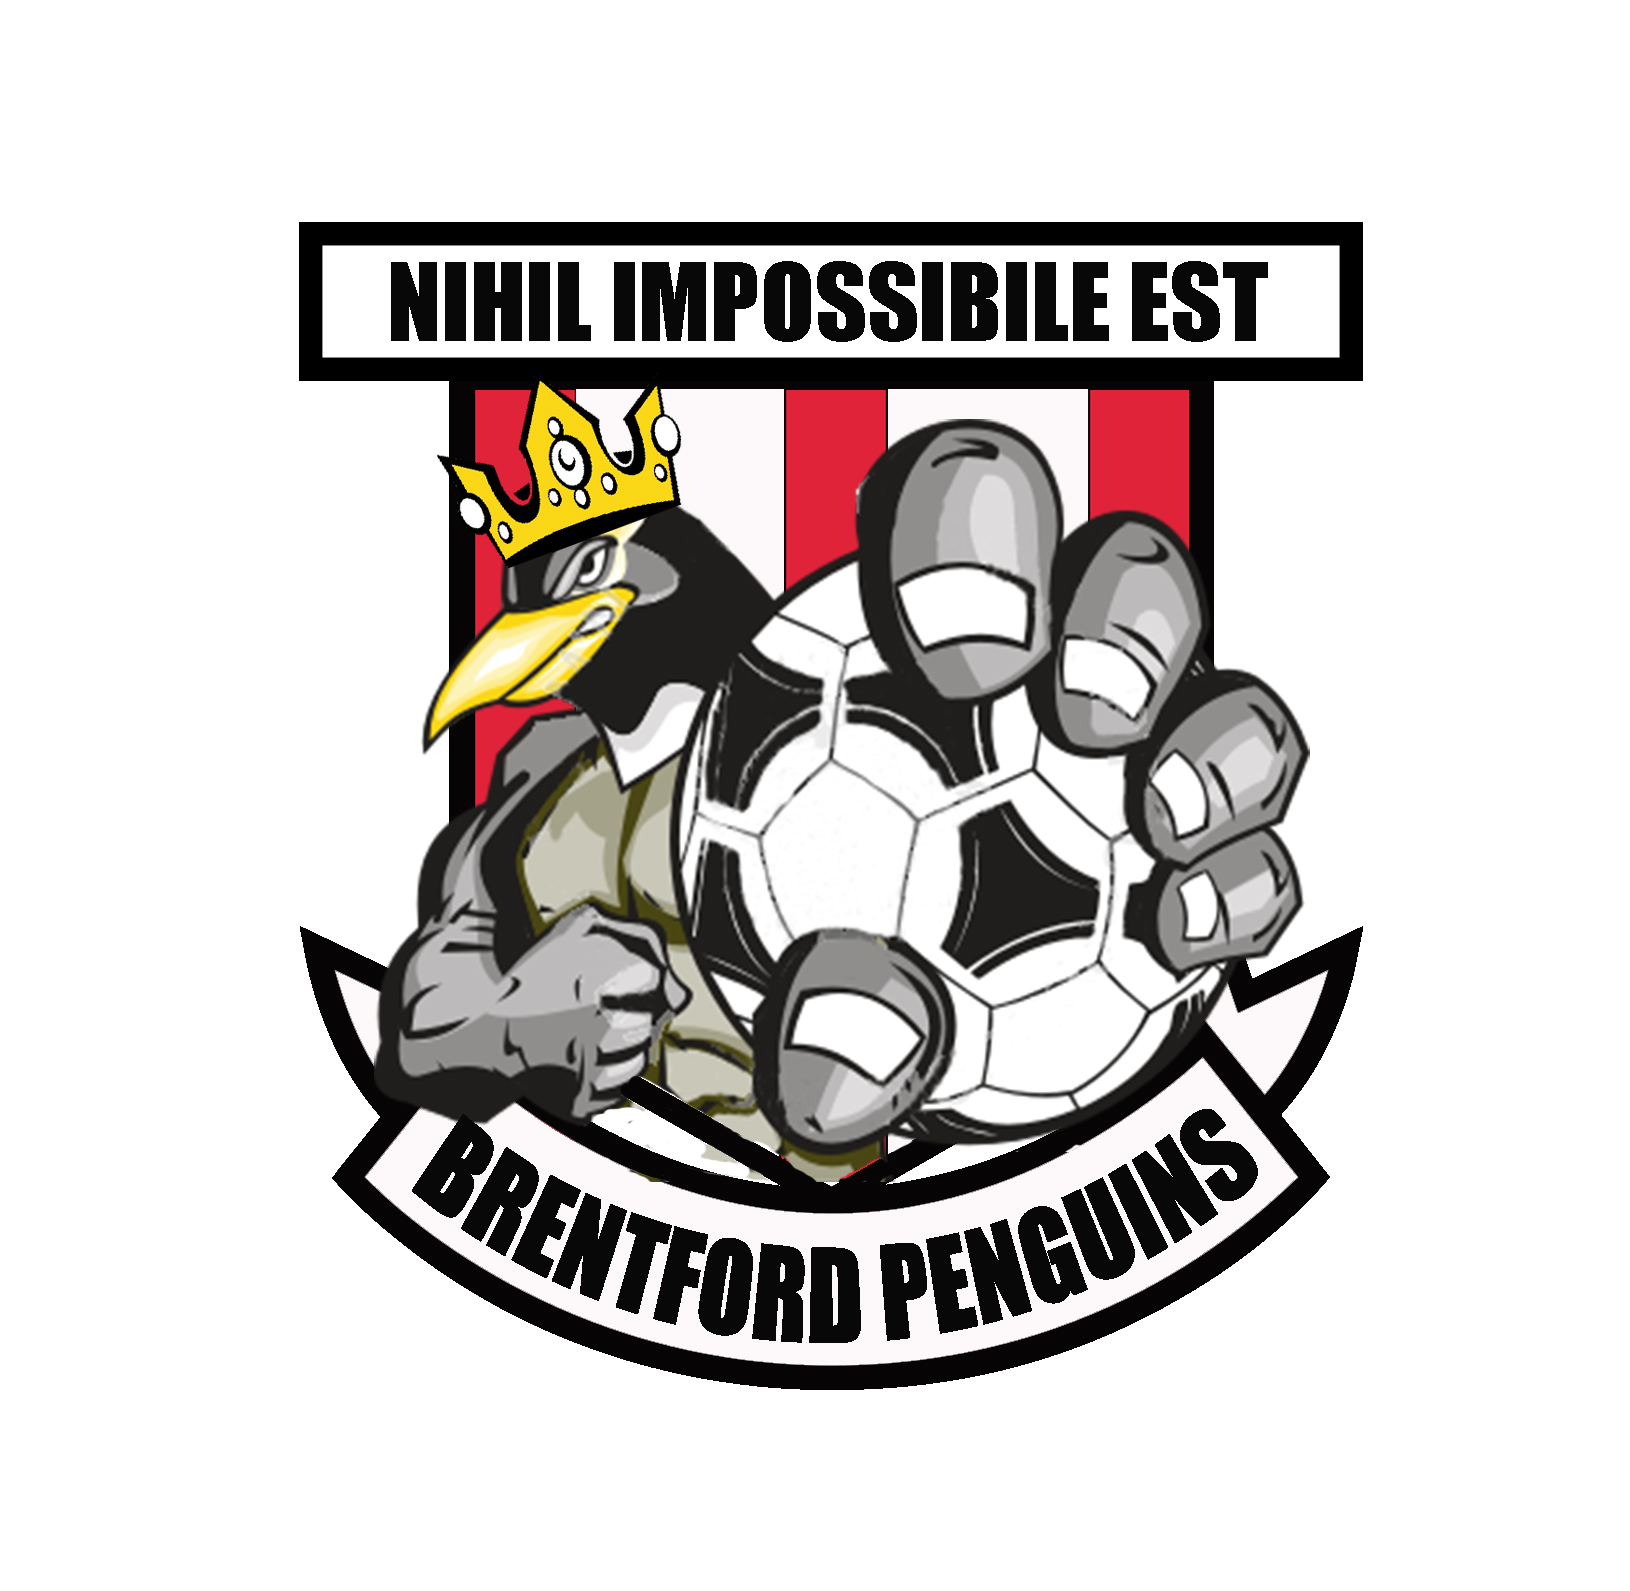 Brentford Penguins FC